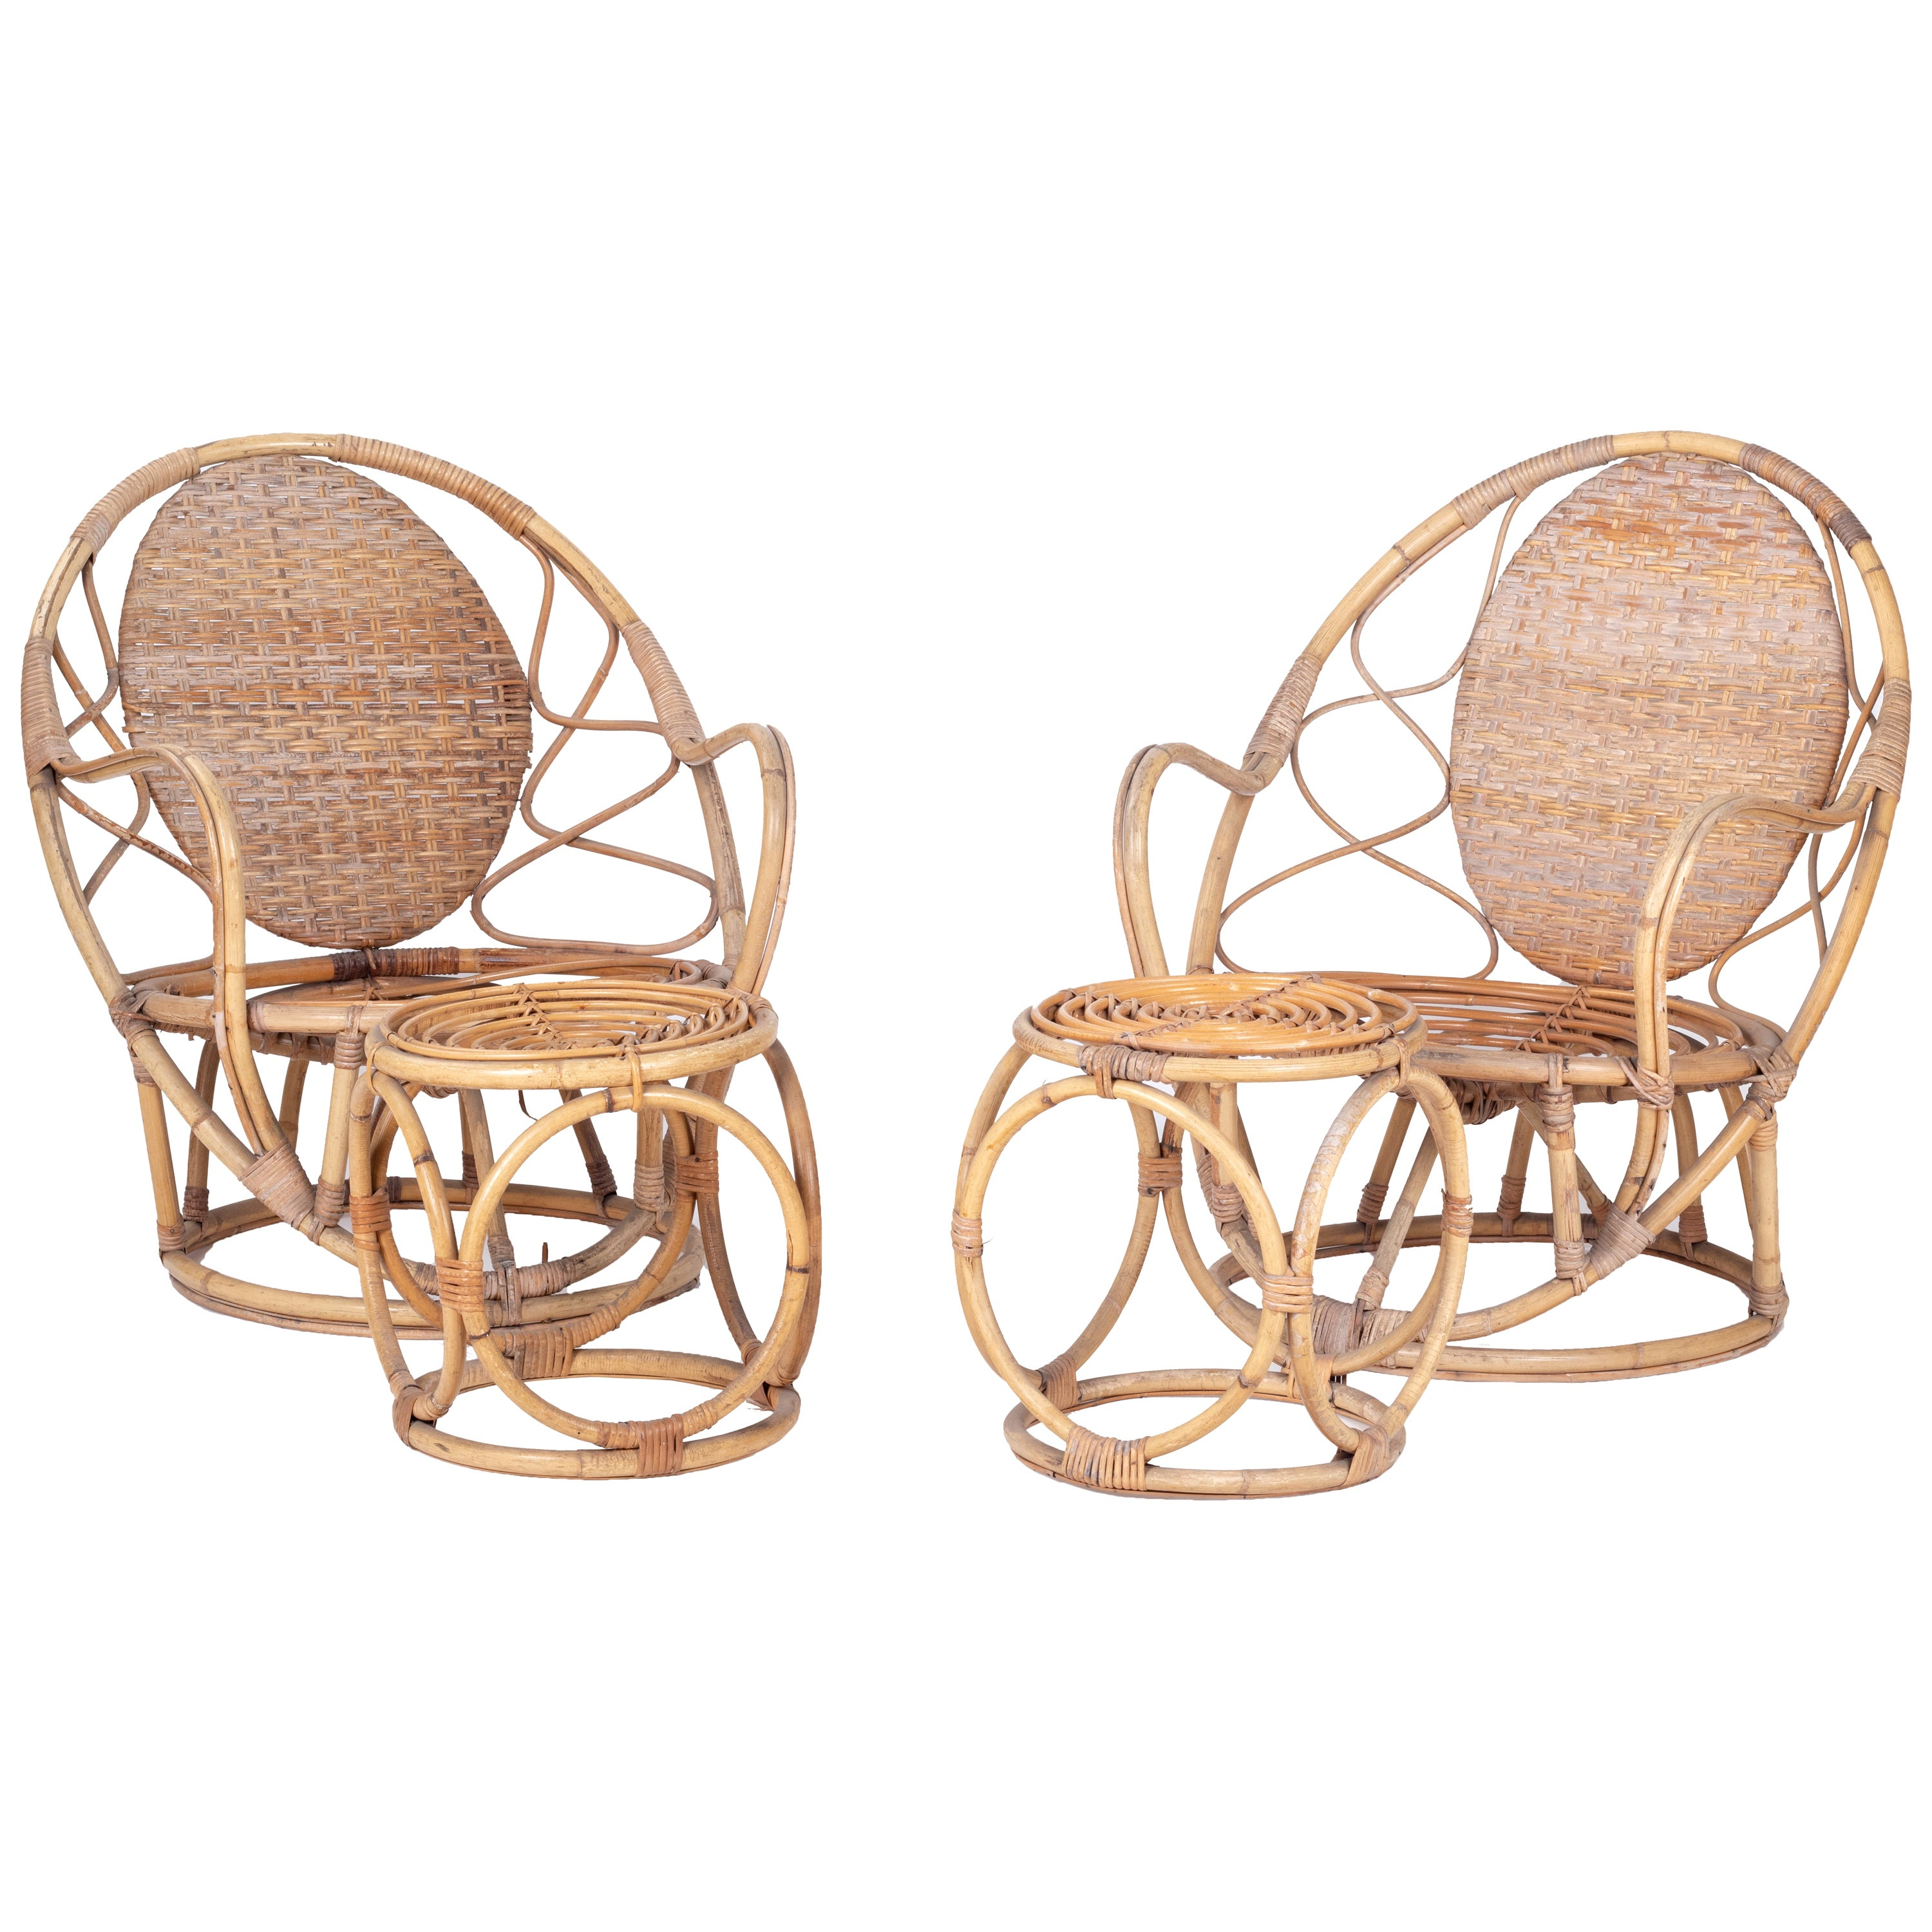 1970s Pair of Bamboo and Wicker Armchairs with Matching Puffs